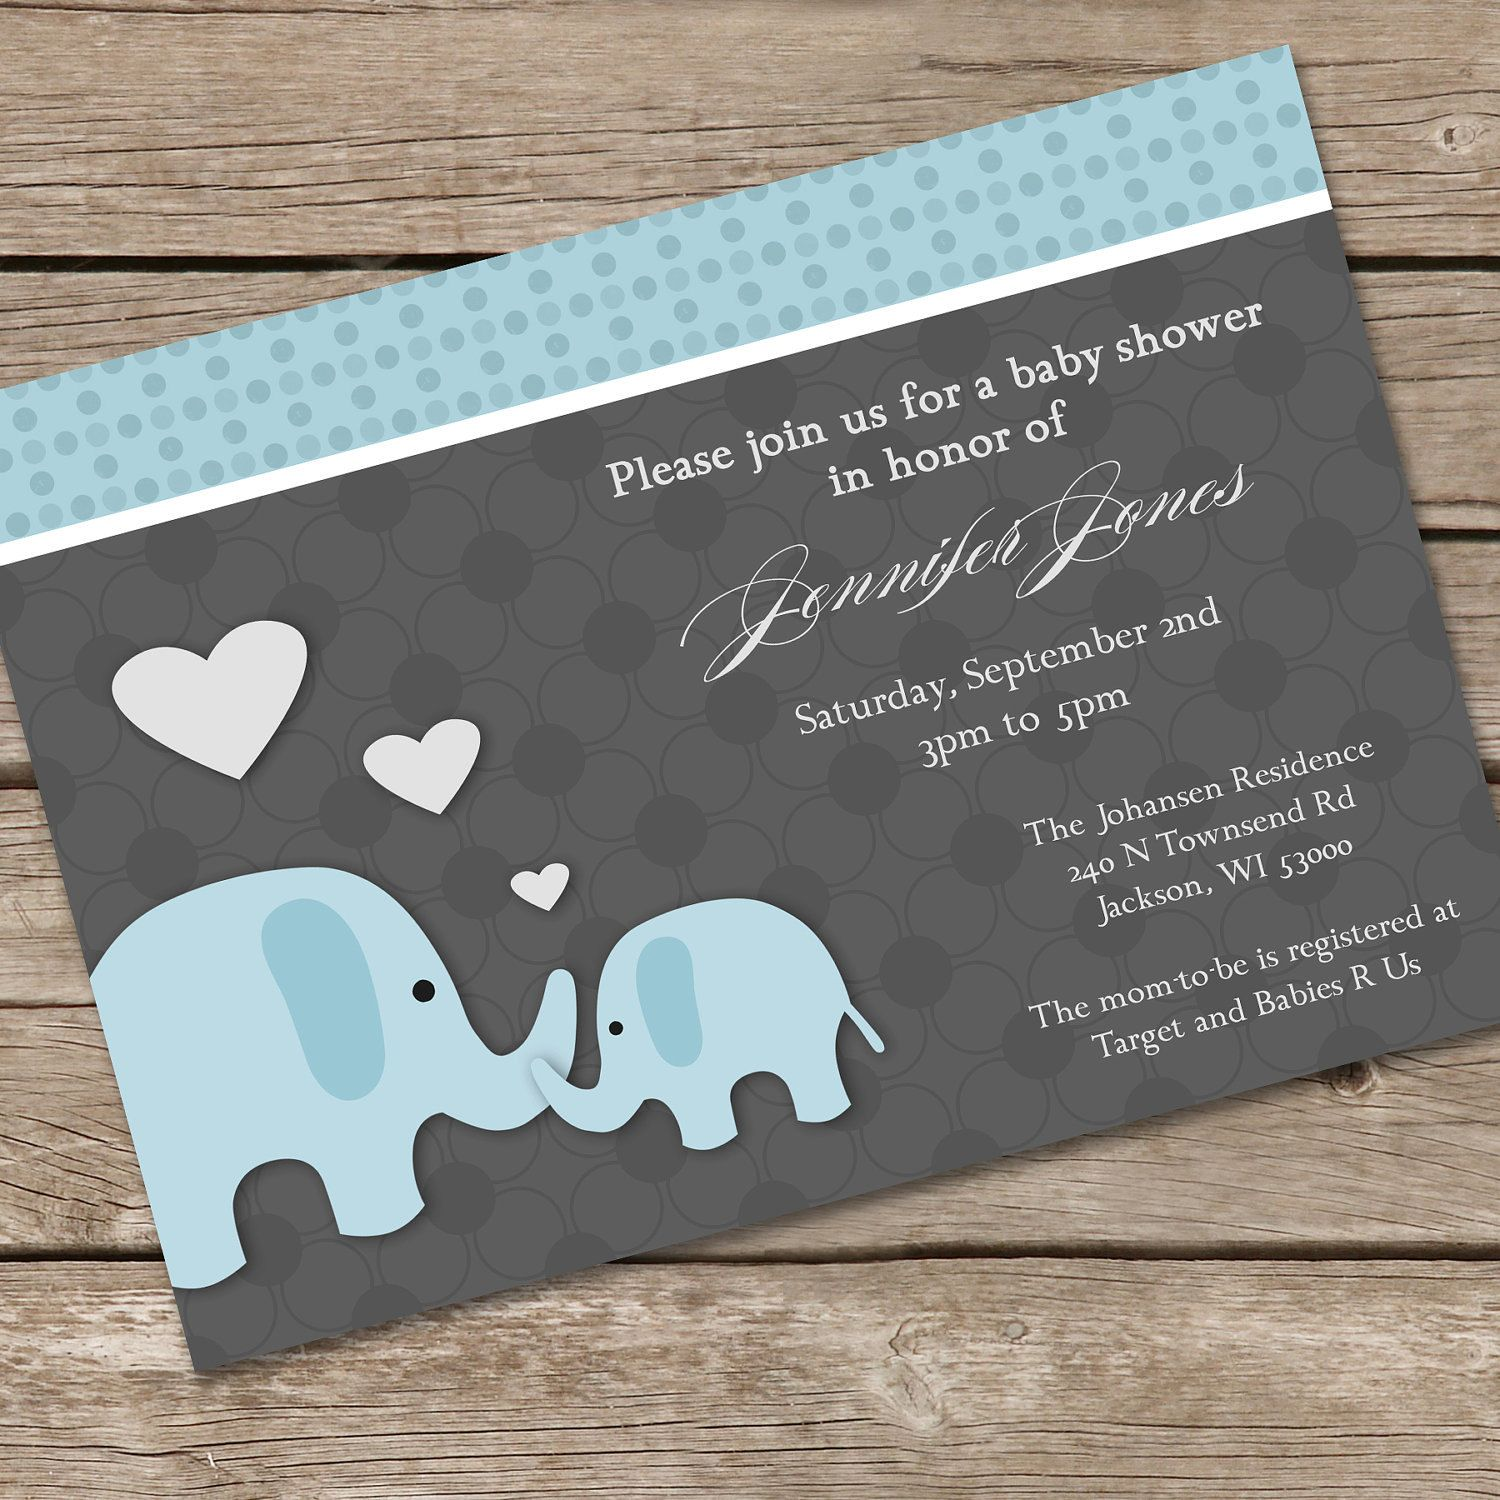 Loving Blue Elephants Baby Shower Invitation DIY Printable i